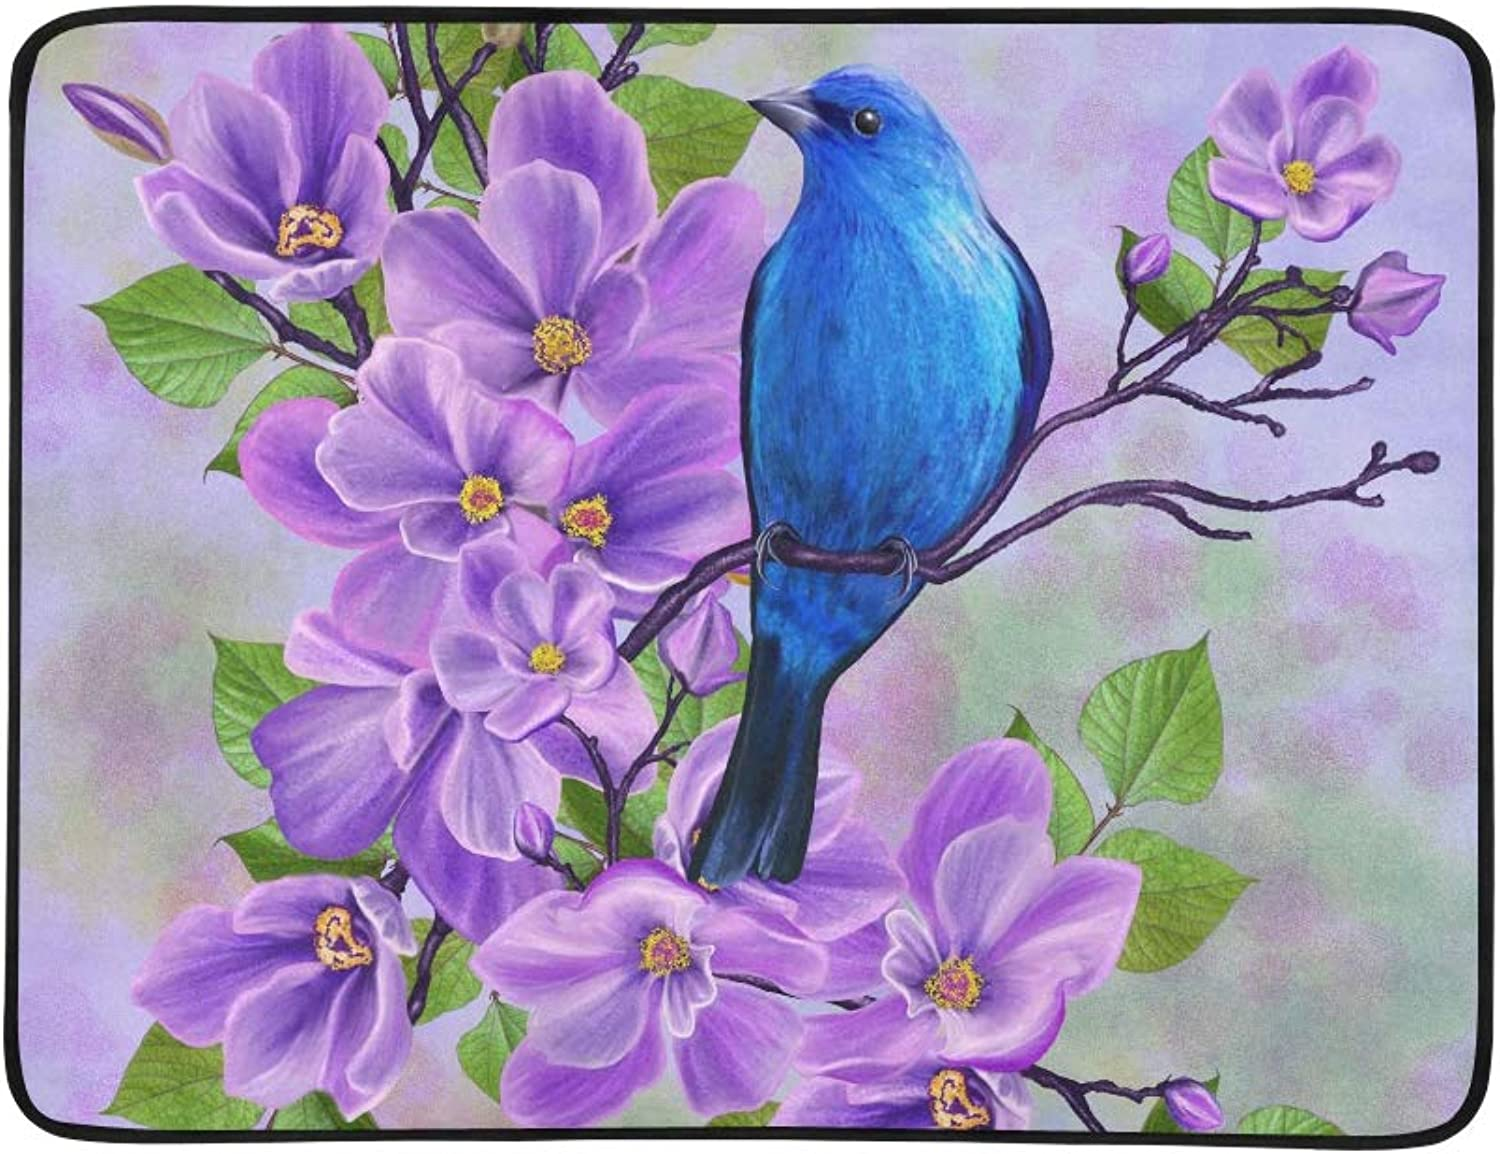 bluee Bird On A Background of Flowering Branches of Pattern Portable and Foldable Blanket Mat 60x78 Inch Handy Mat for Camping Picnic Beach Indoor Outdoor Travel